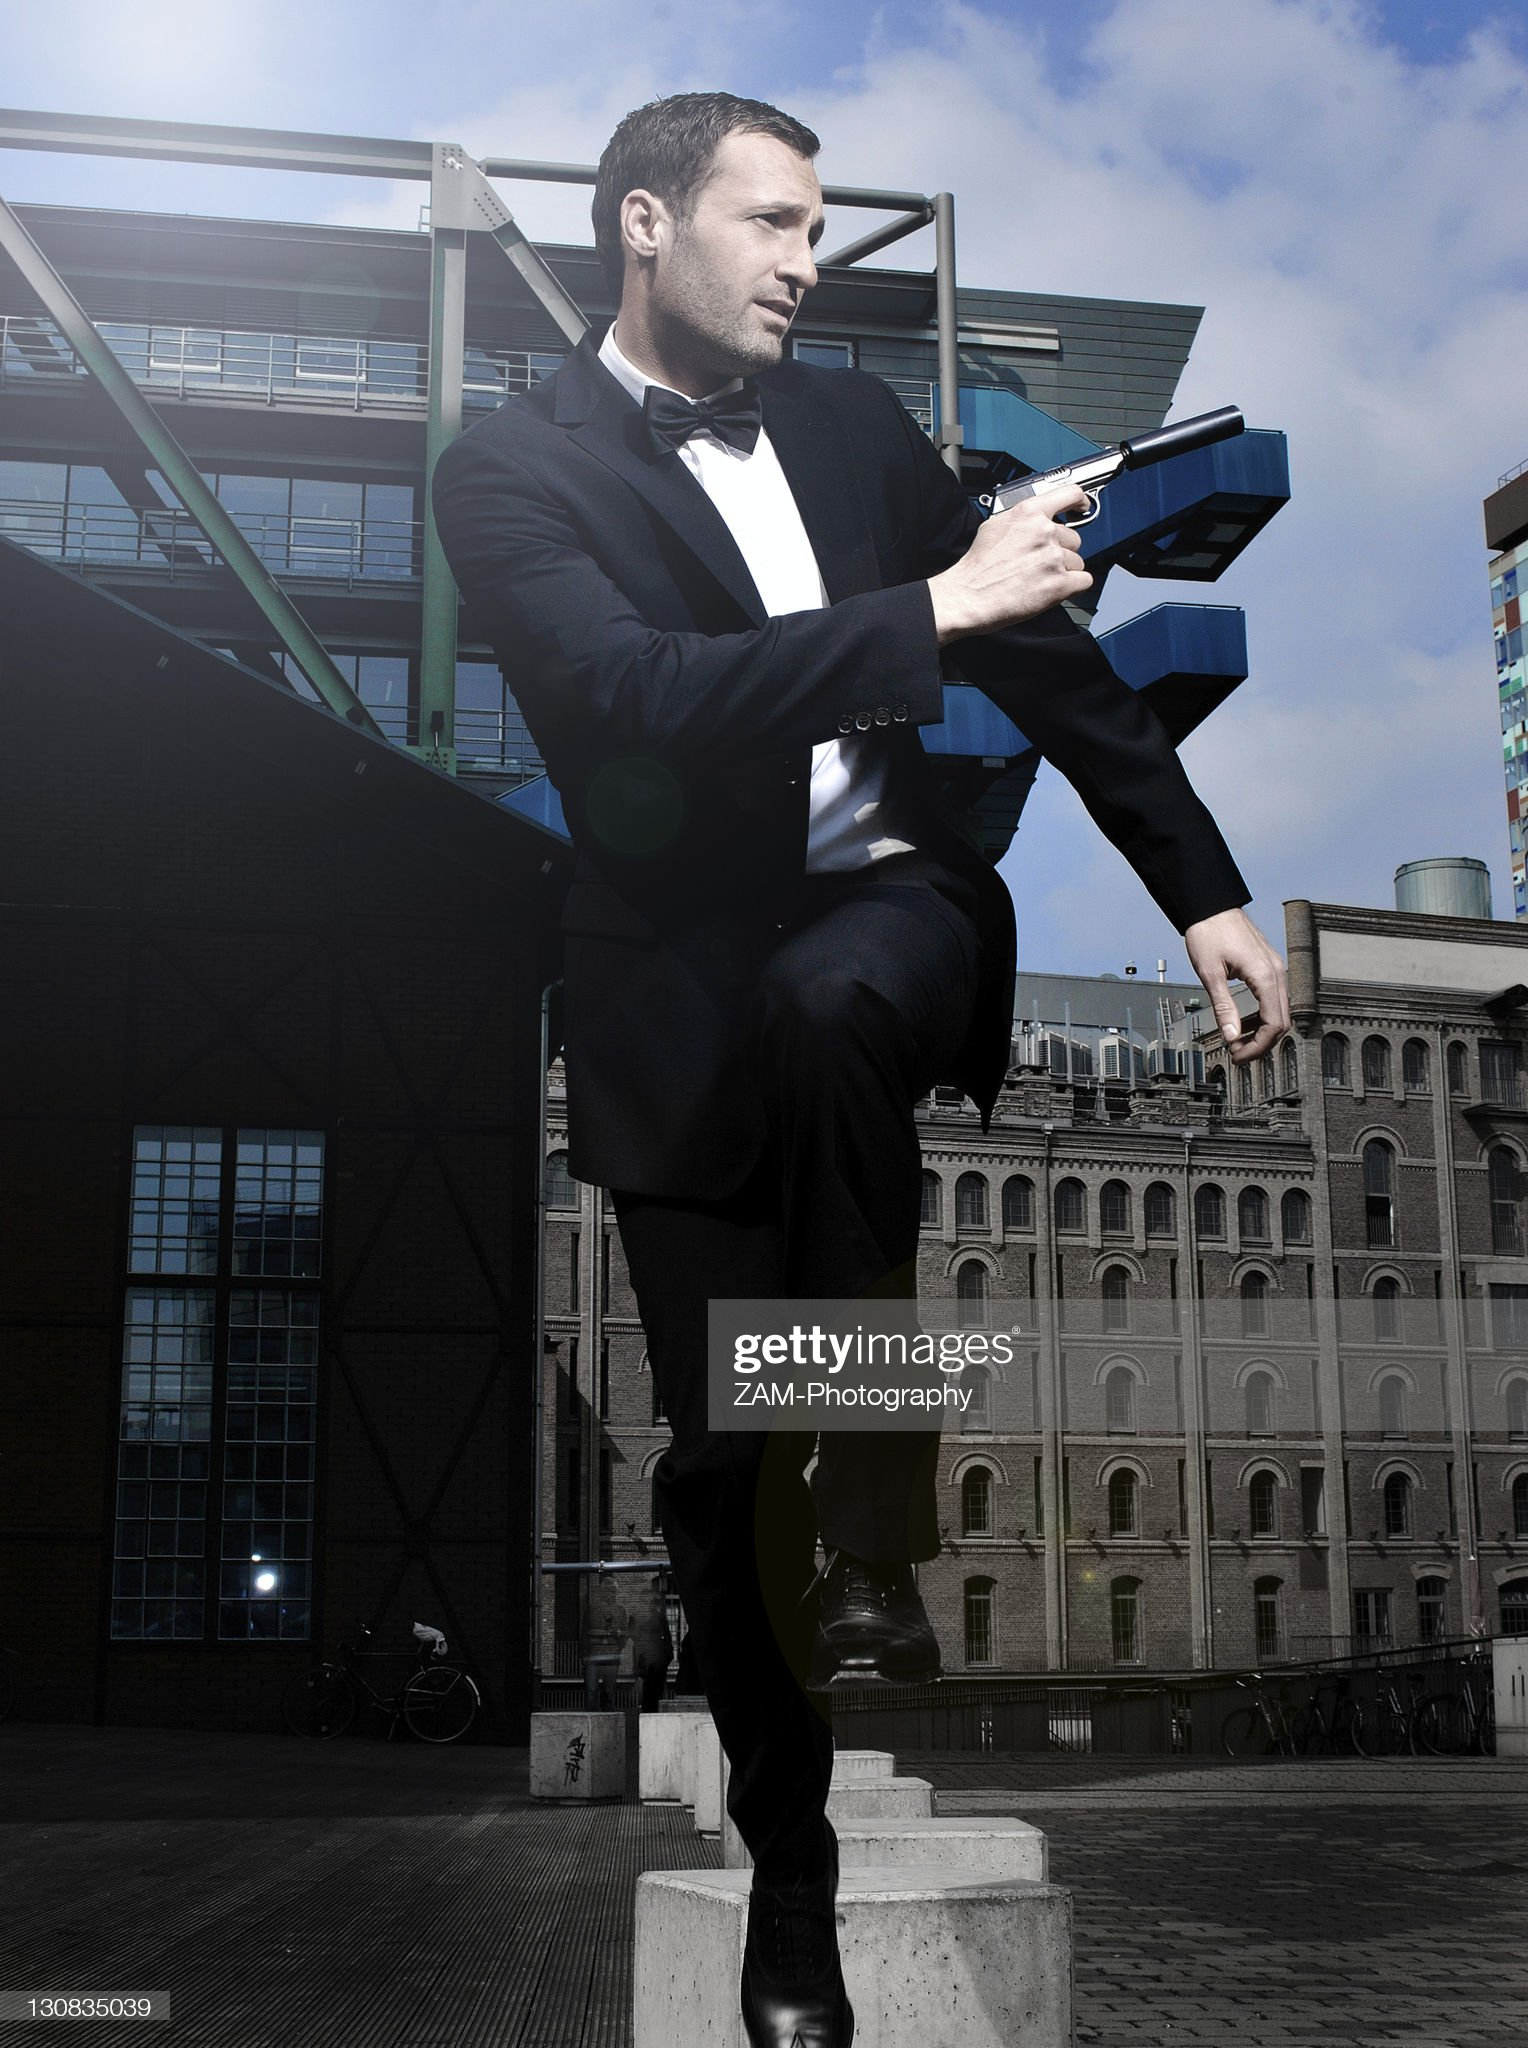 31yearold-man-dressed-up-as-james-bond-in-duesseldorf-harbour-north-picture-id130835039?s=2048x2048